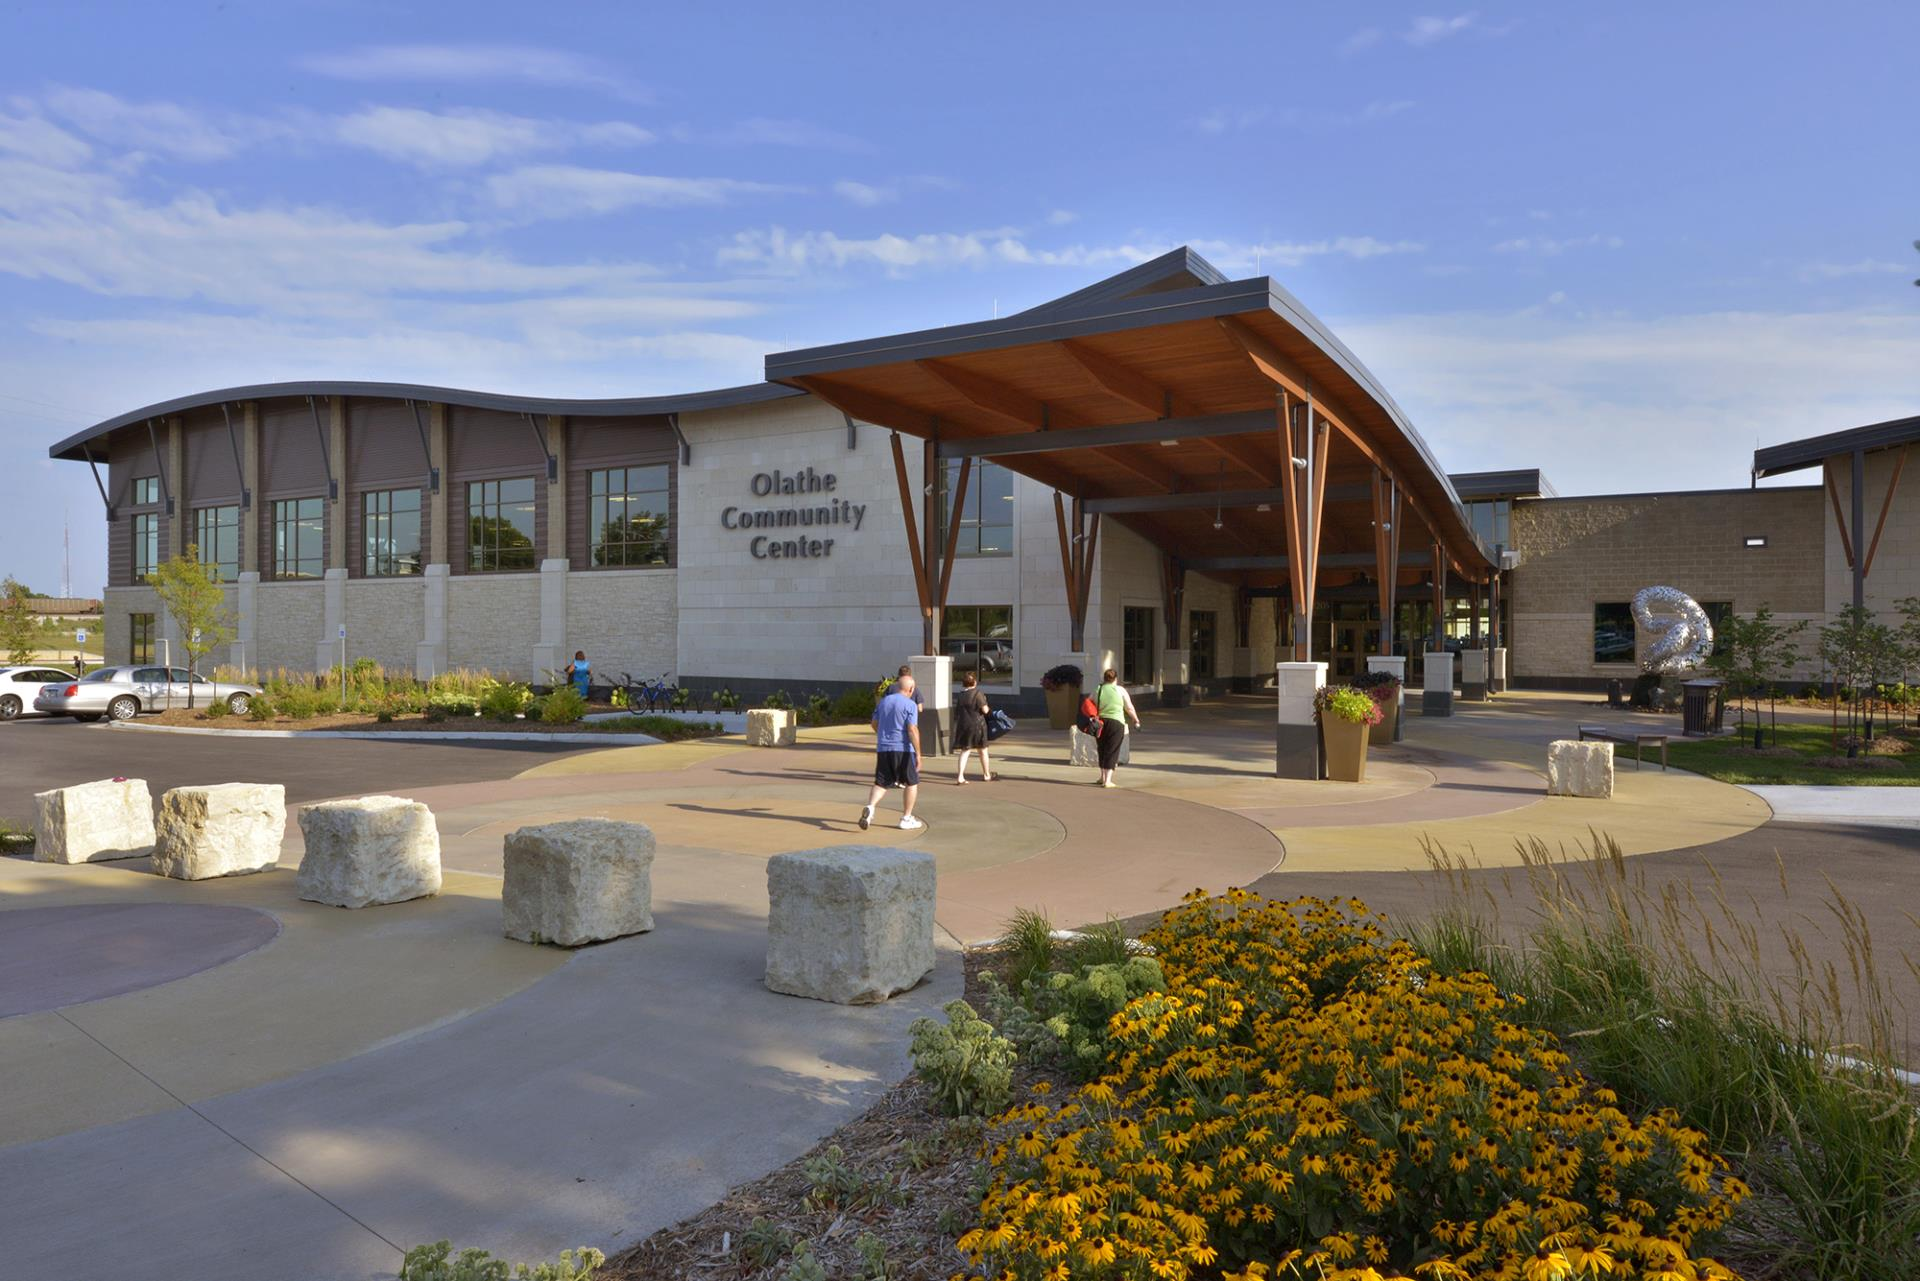 Photo of the front entrance to the Olathe Community Center